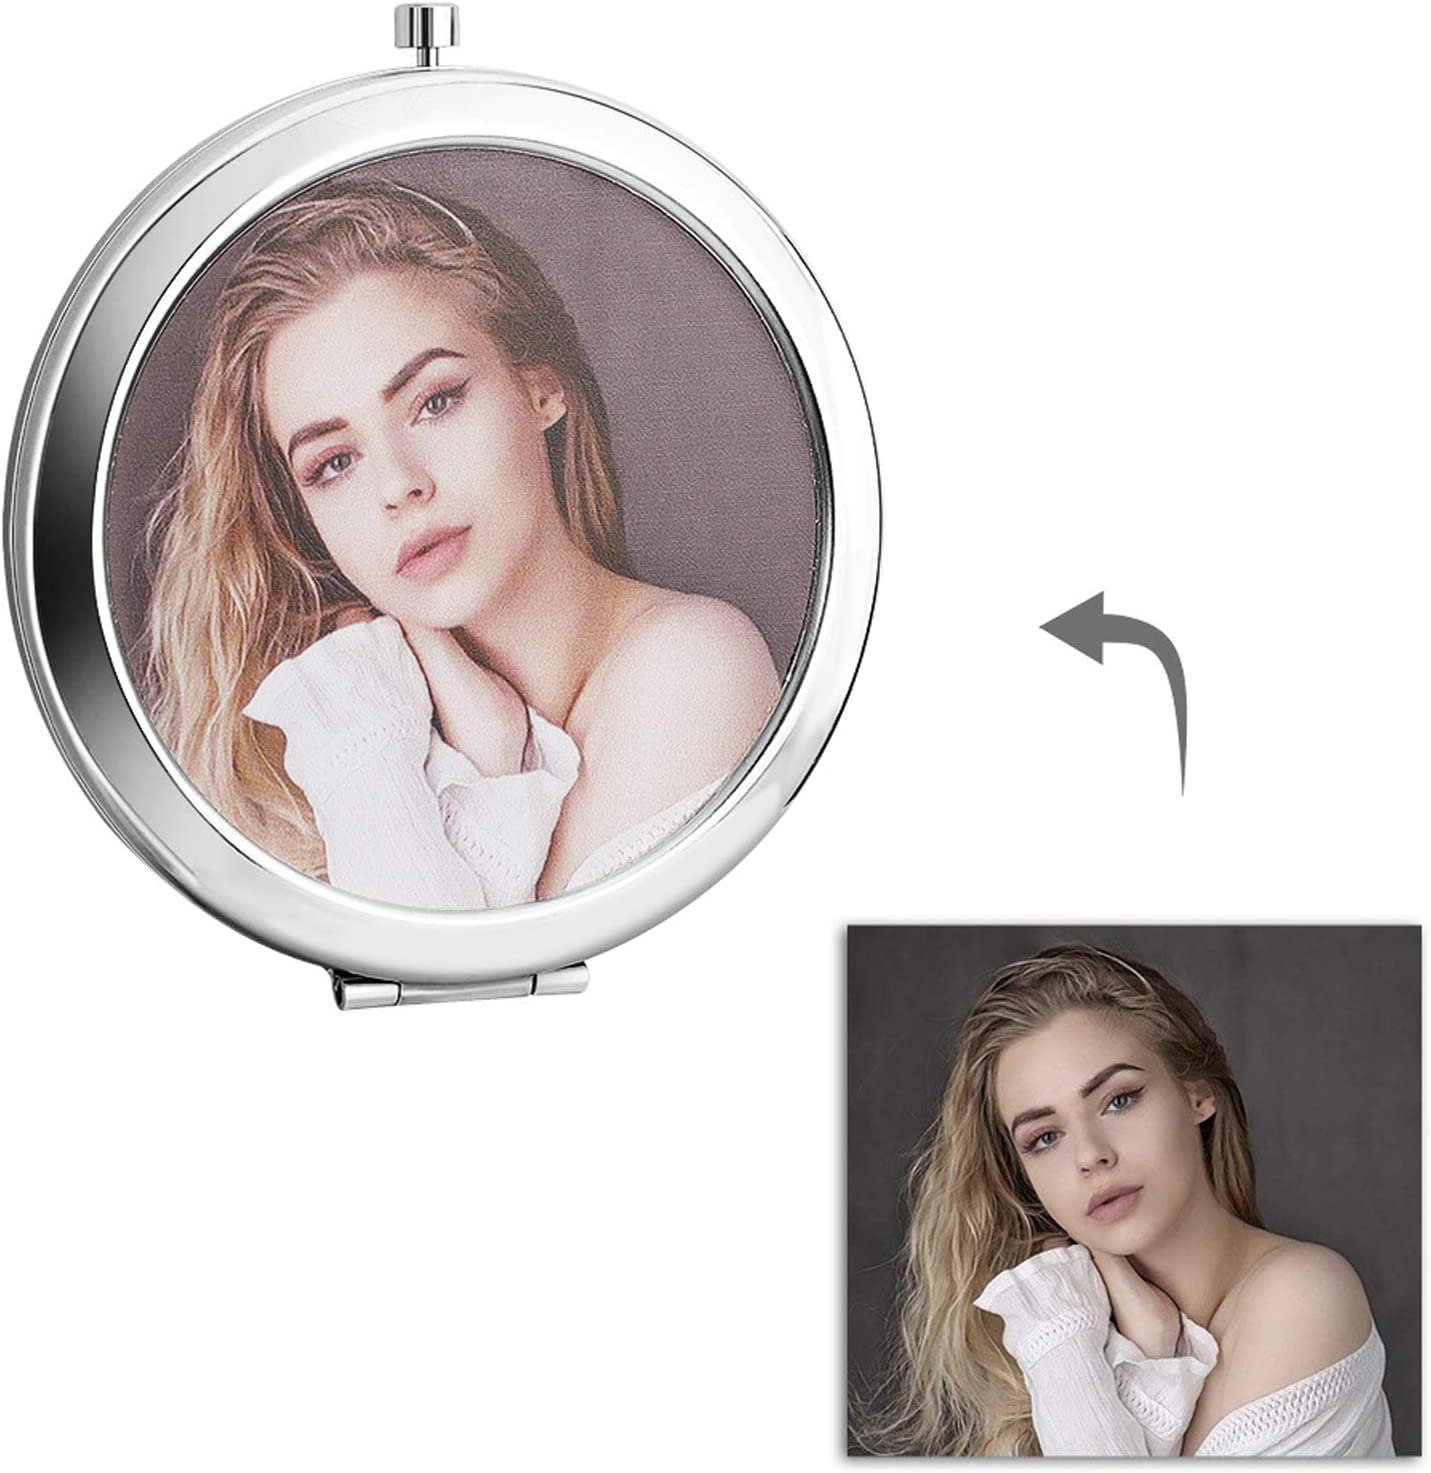 Personalized Photo Make-up Mirror for Shipping included Mirro Compact Industry No. 1 Custom Women